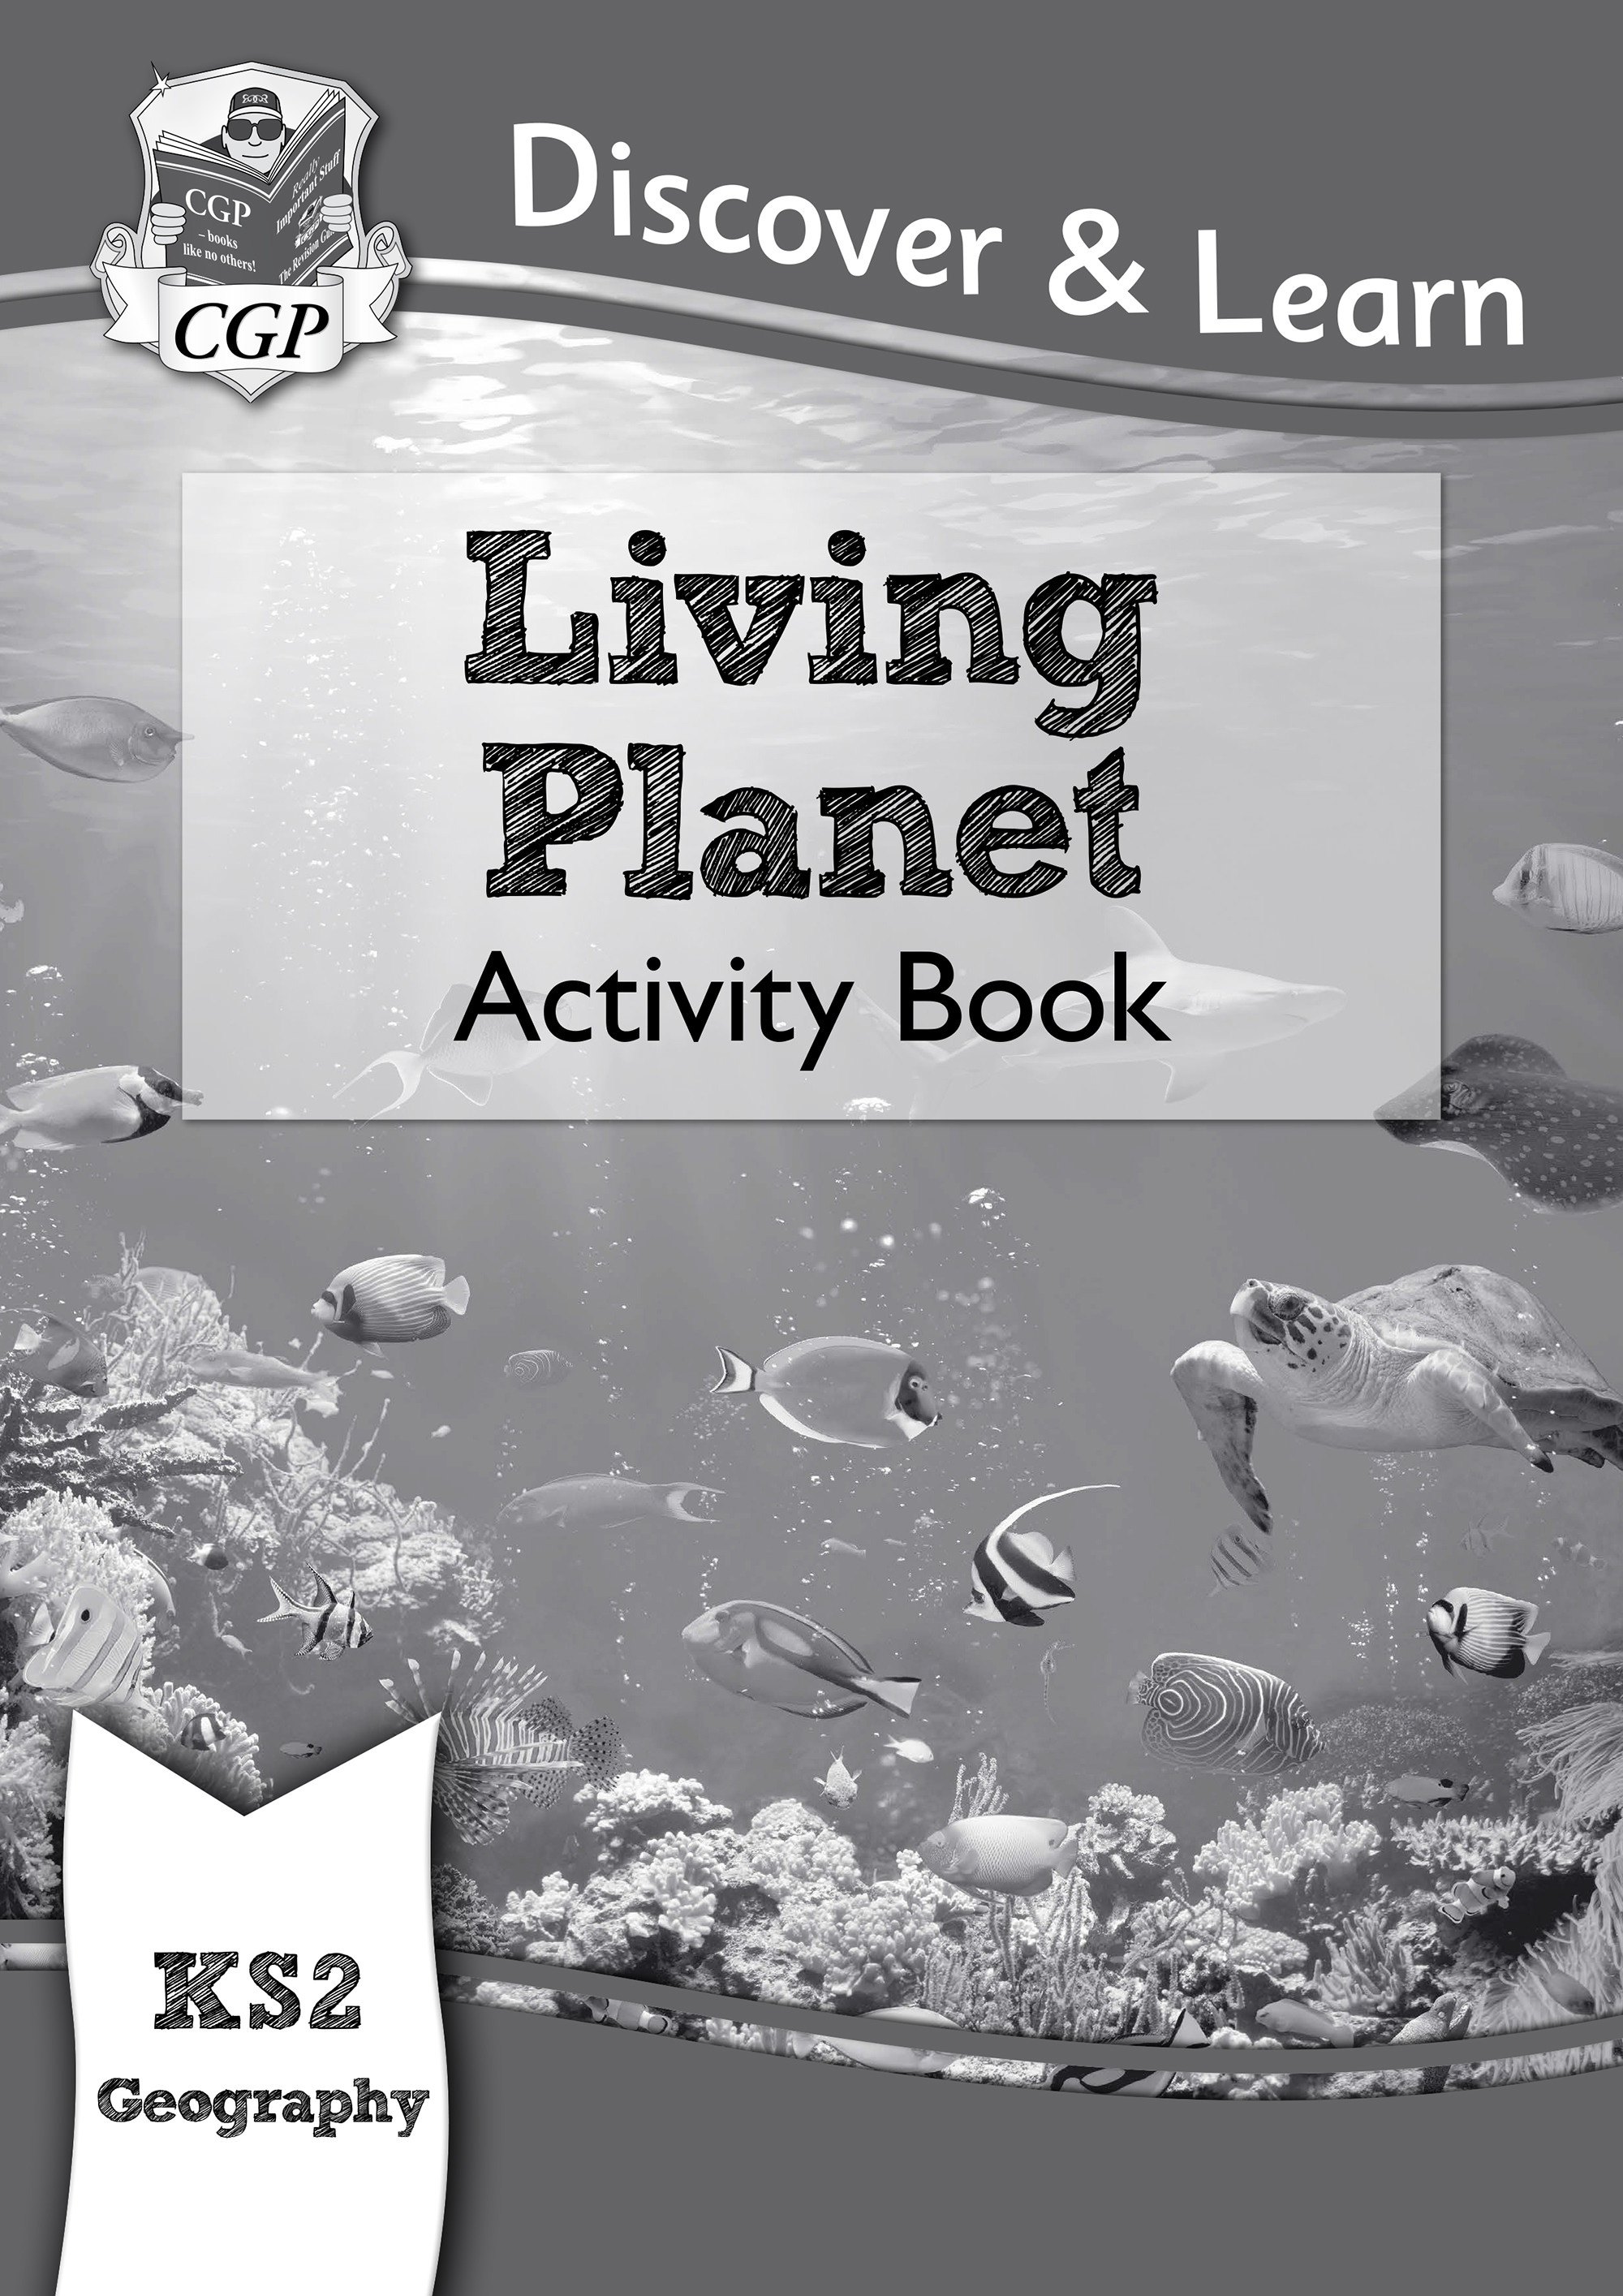 GLW21DK - KS2 Discover & Learn: Geography - Living Planet Activity Book